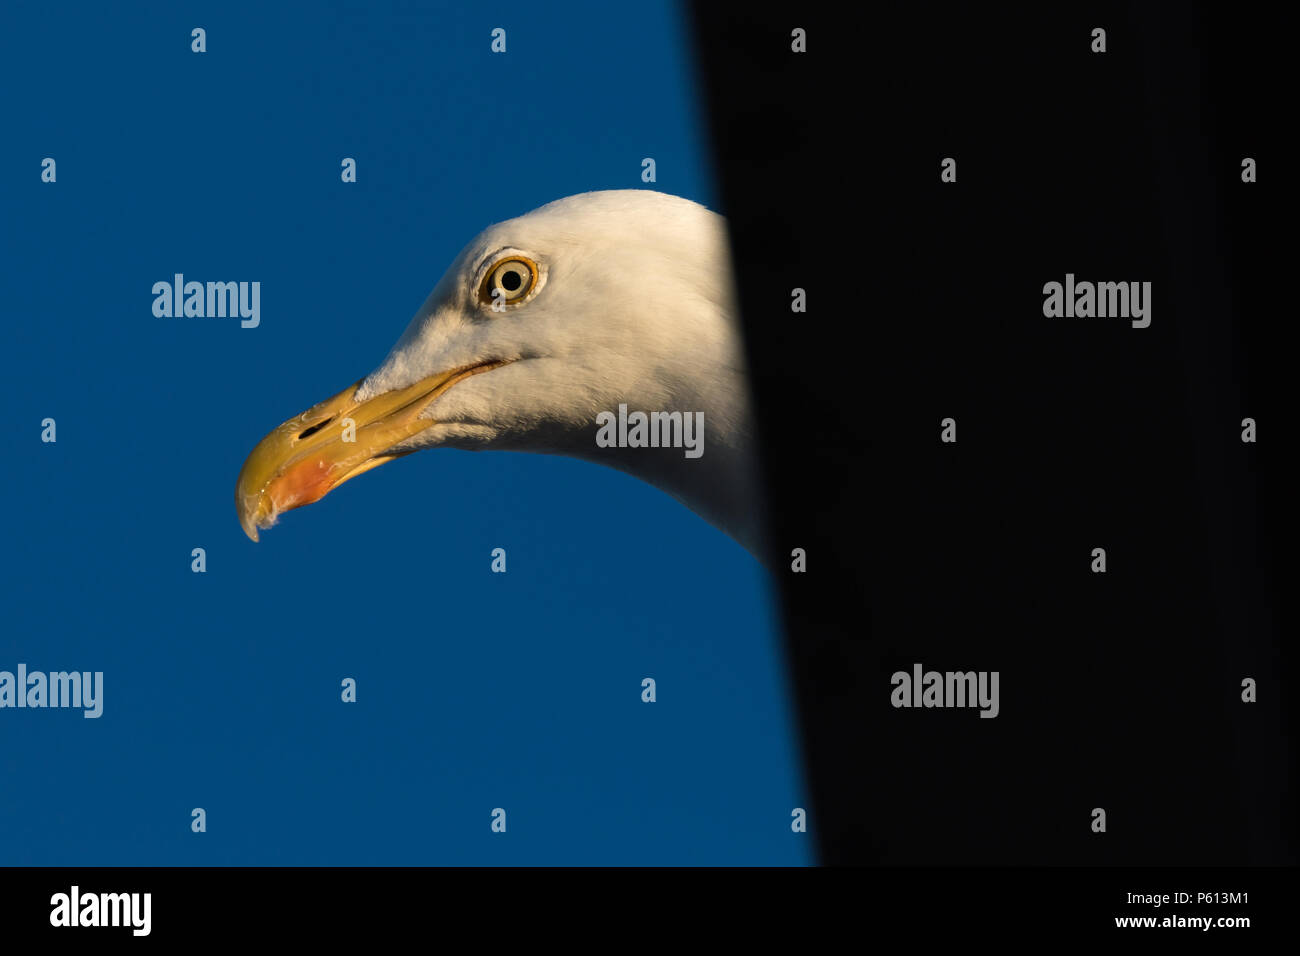 Wembley Park, London, UK. 27th Jun, 2018. Detail close up of Common Gull (Seagull) on residential roof Credit: amanda rose/Alamy Live News - Stock Image